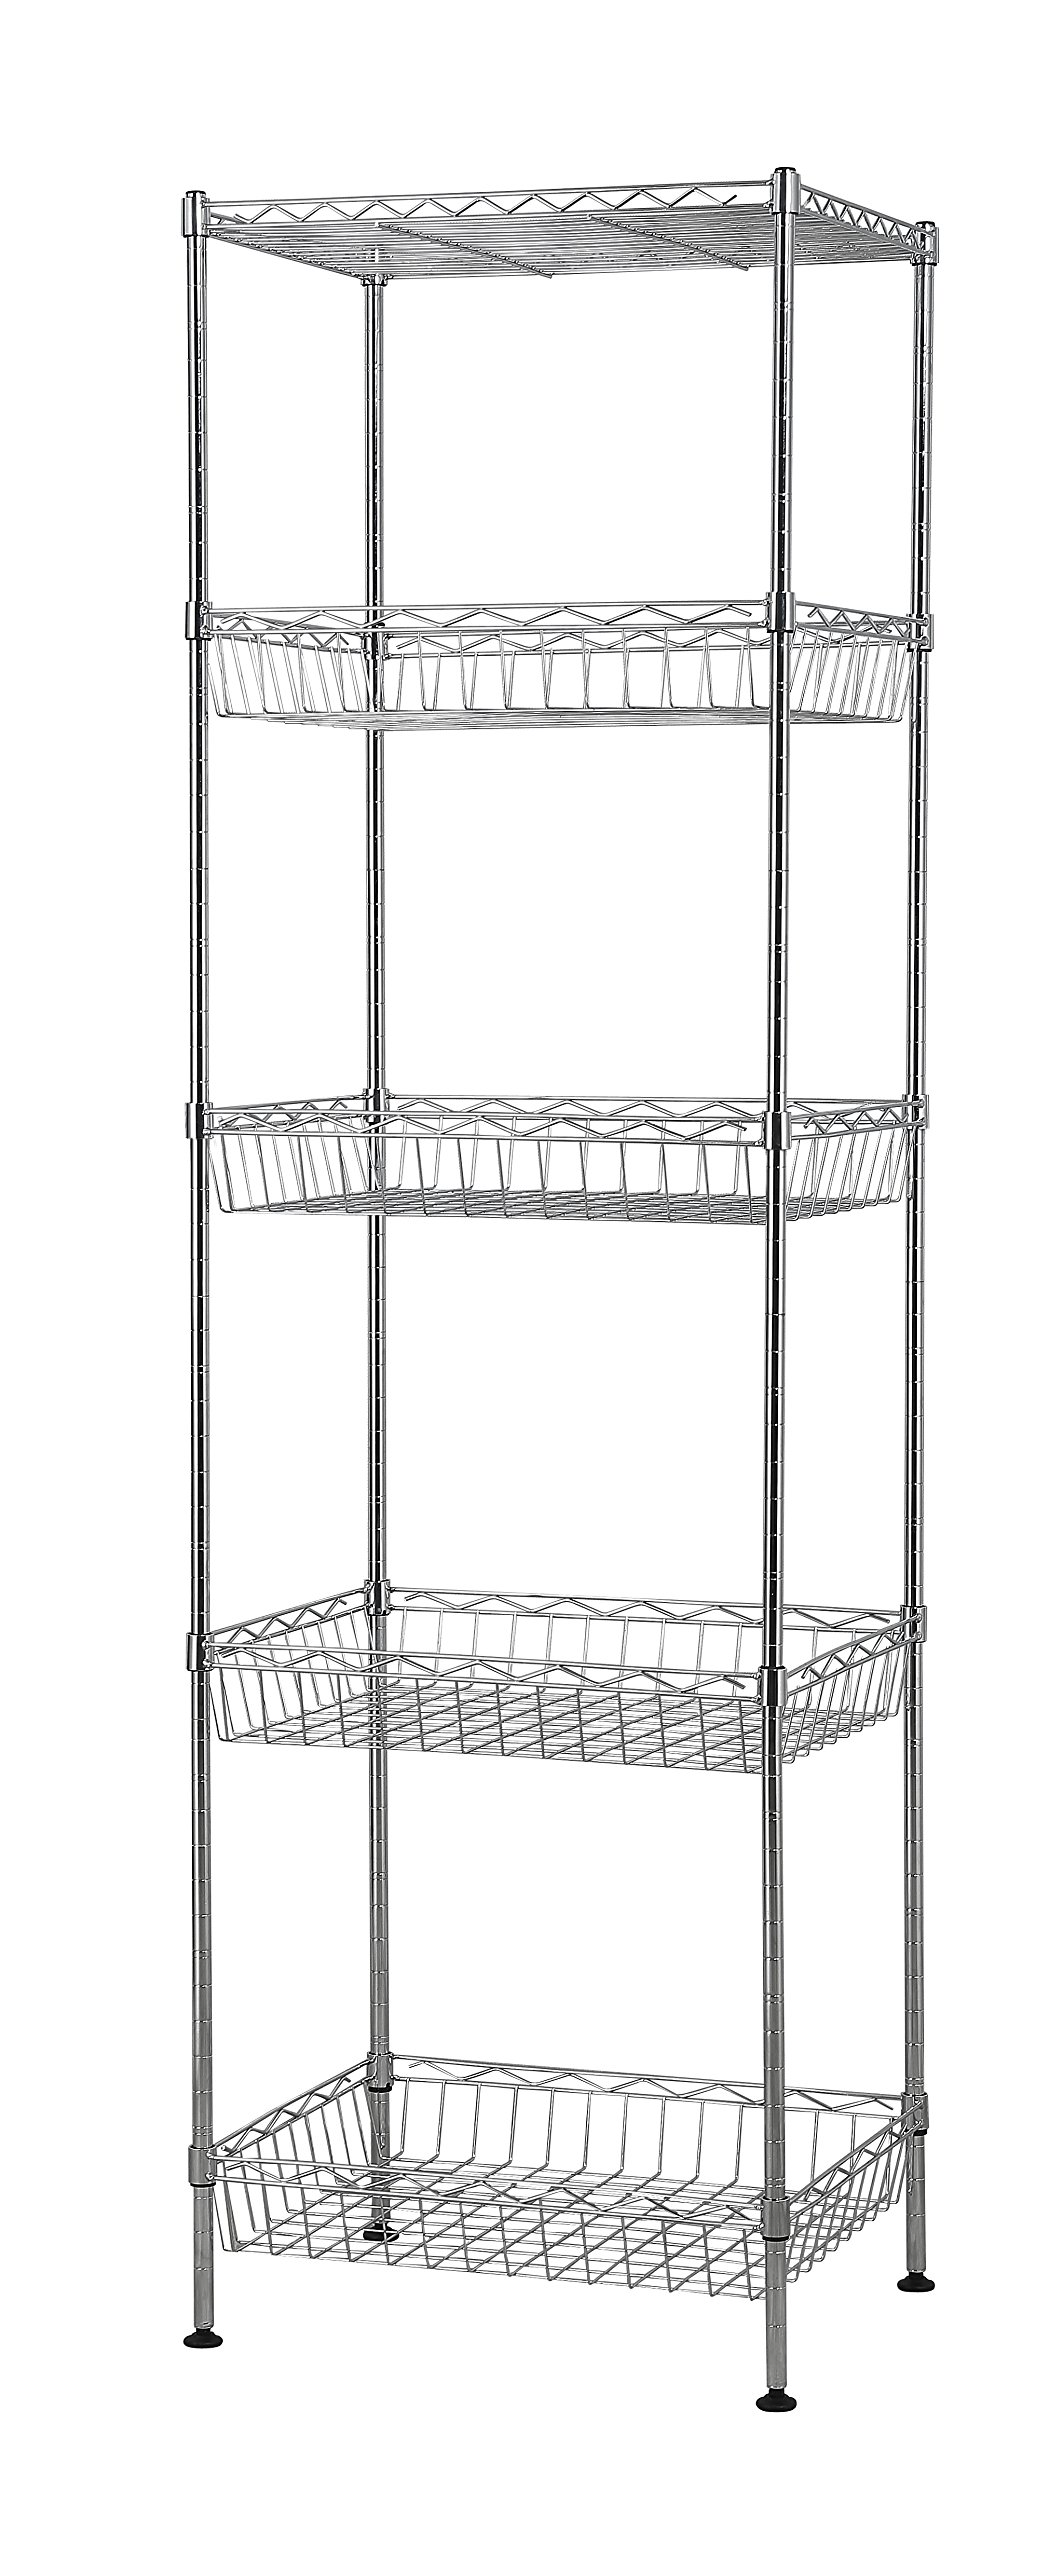 Muscle Rack WB181460 5-Tier Wire Shelving Unit with Baskets, 60'' Height, 18'' Width, 14'' Length